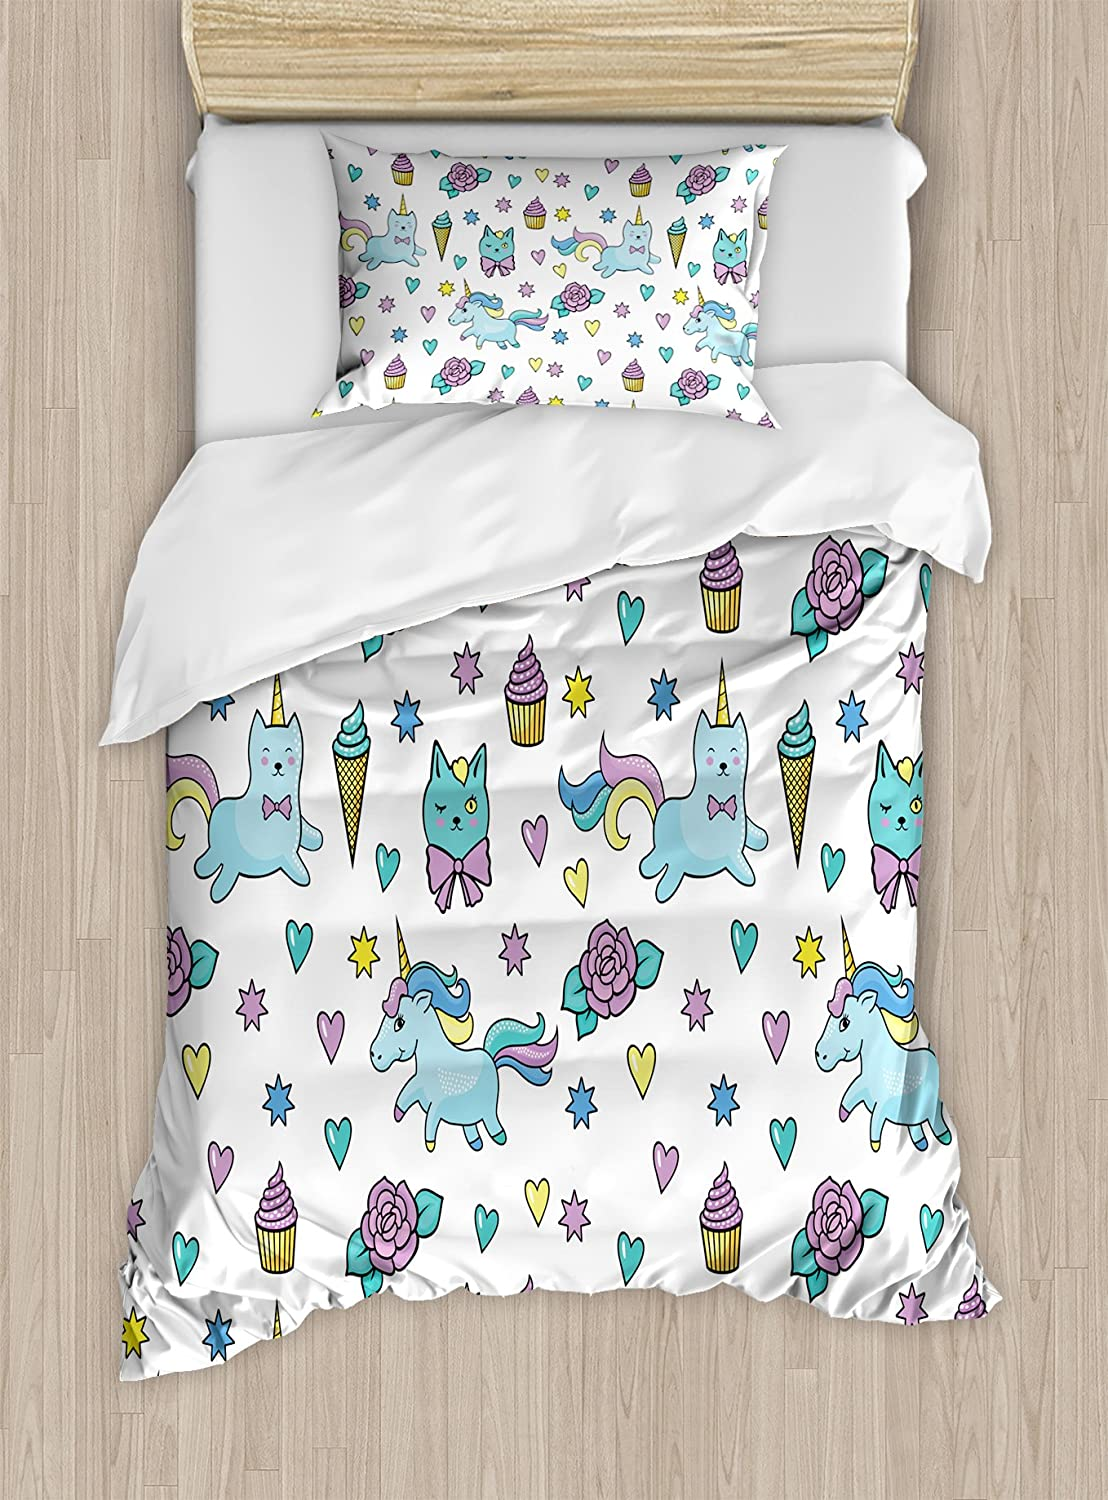 Ambesonne Unicorn Cat Duvet Cover Set, Girls Pattern with Hearts Stars Flowers Ice Cream Funny, Decorative 2 Piece Bedding Set with 1 Pillow Sham, Twin Size, Blue